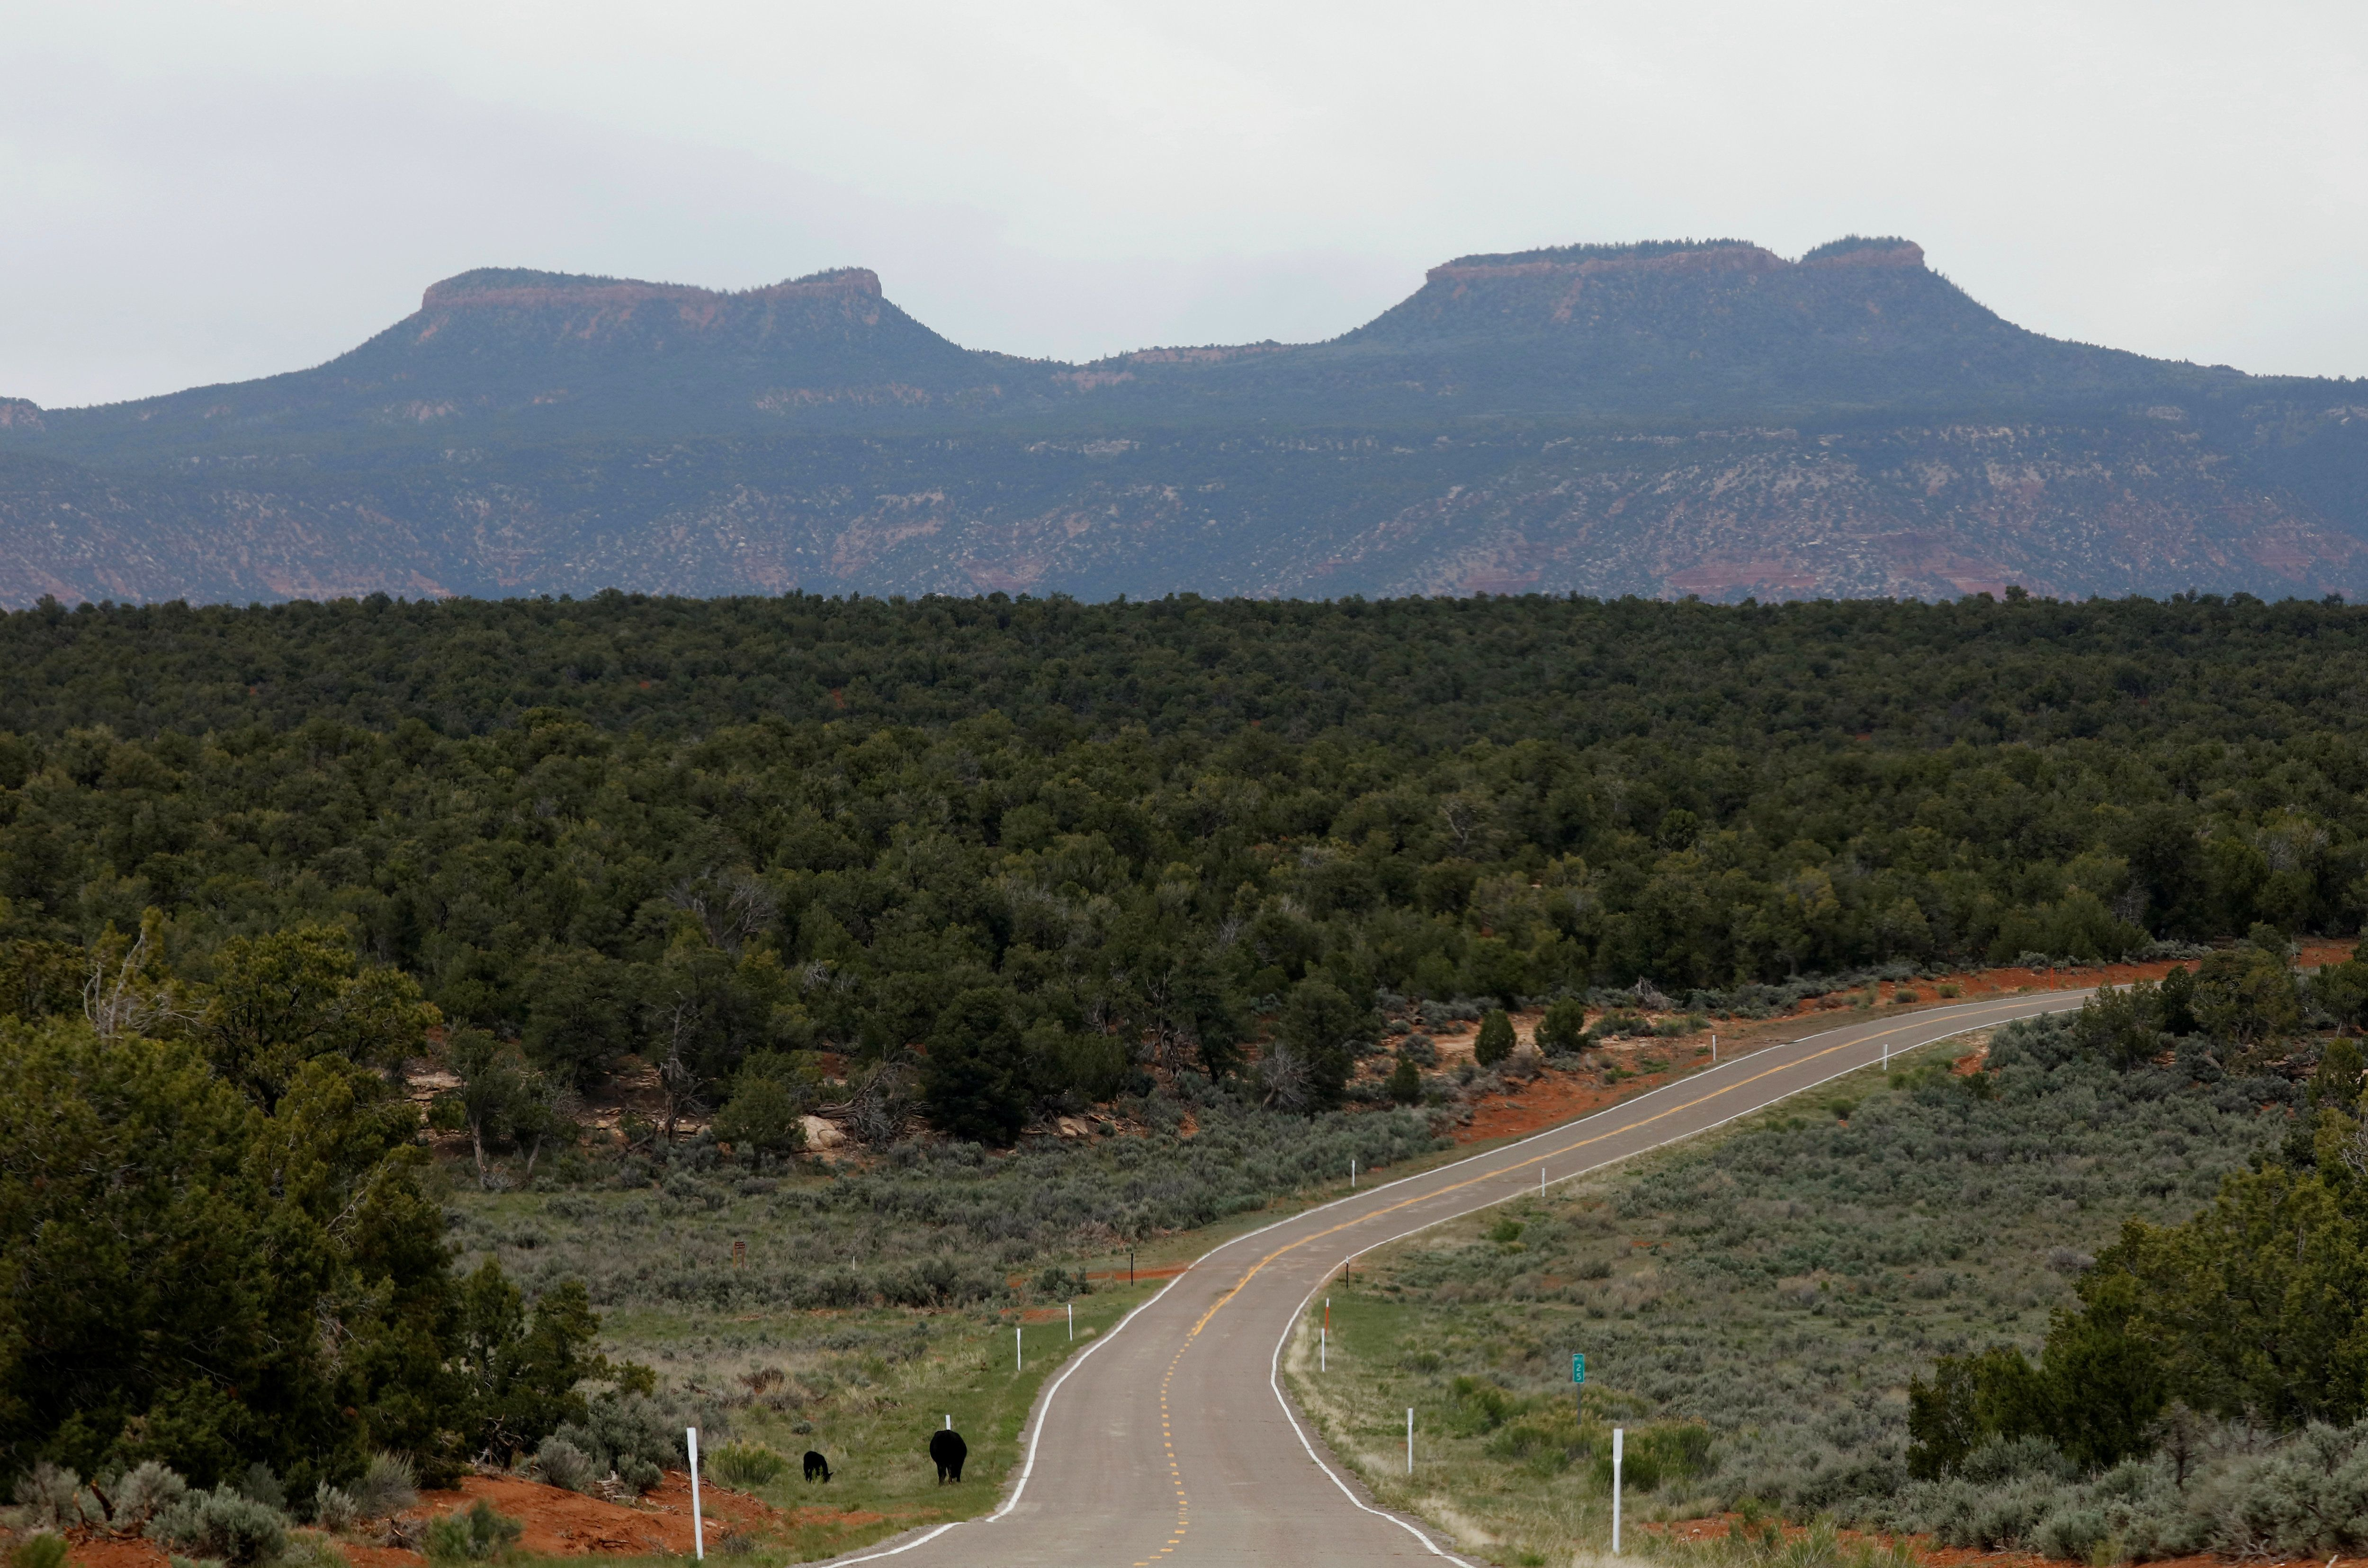 Bears Ears, the twin rock formation that's part of Bears Ears National Monument in the Four Corners region. The monument lost